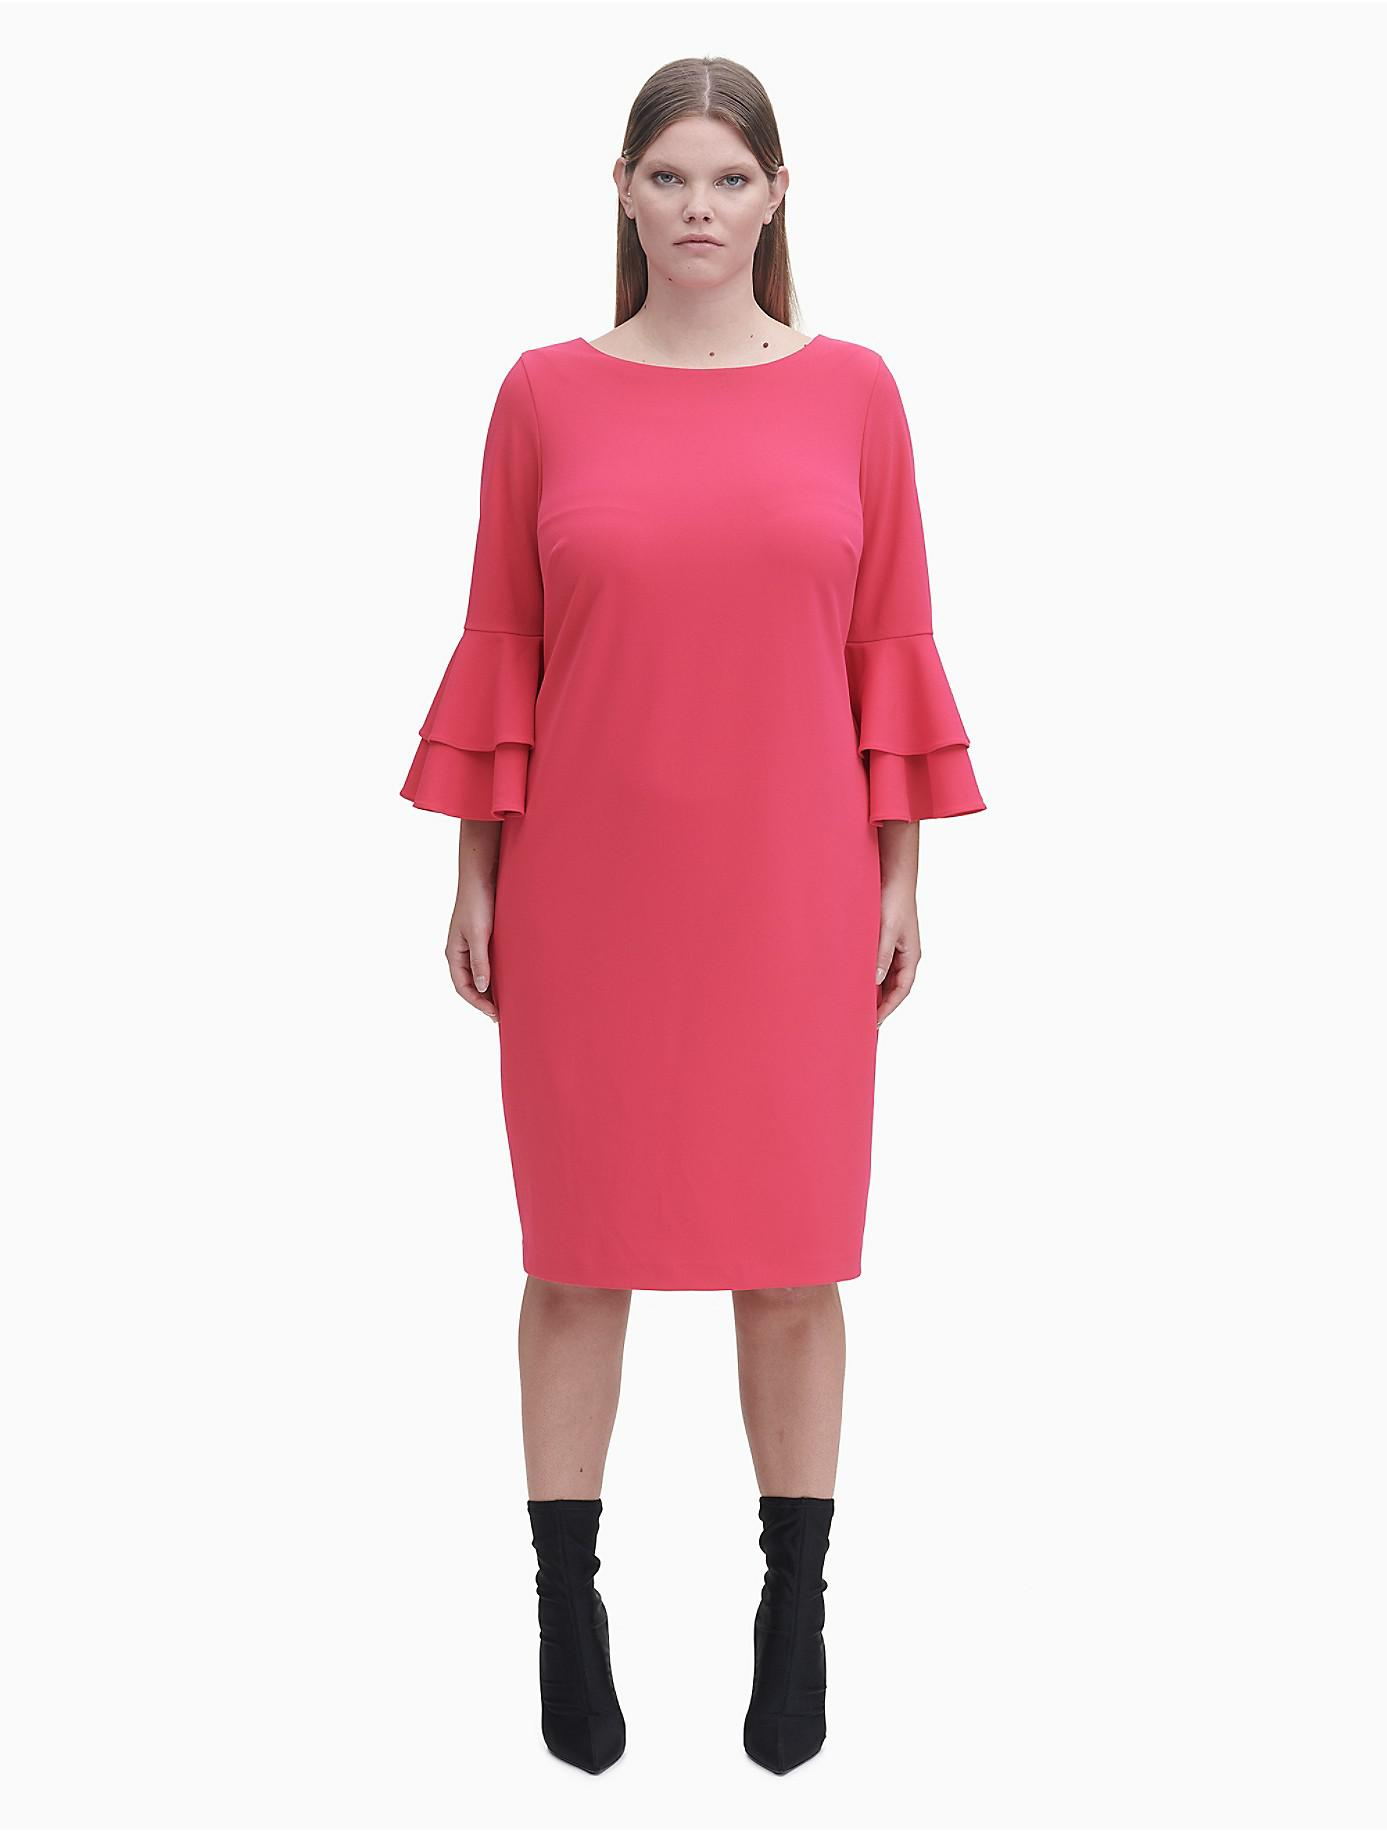 cf315515a8d Lyst - Calvin Klein Plus Size Tiered Sleeve Sheath Dress in Pink